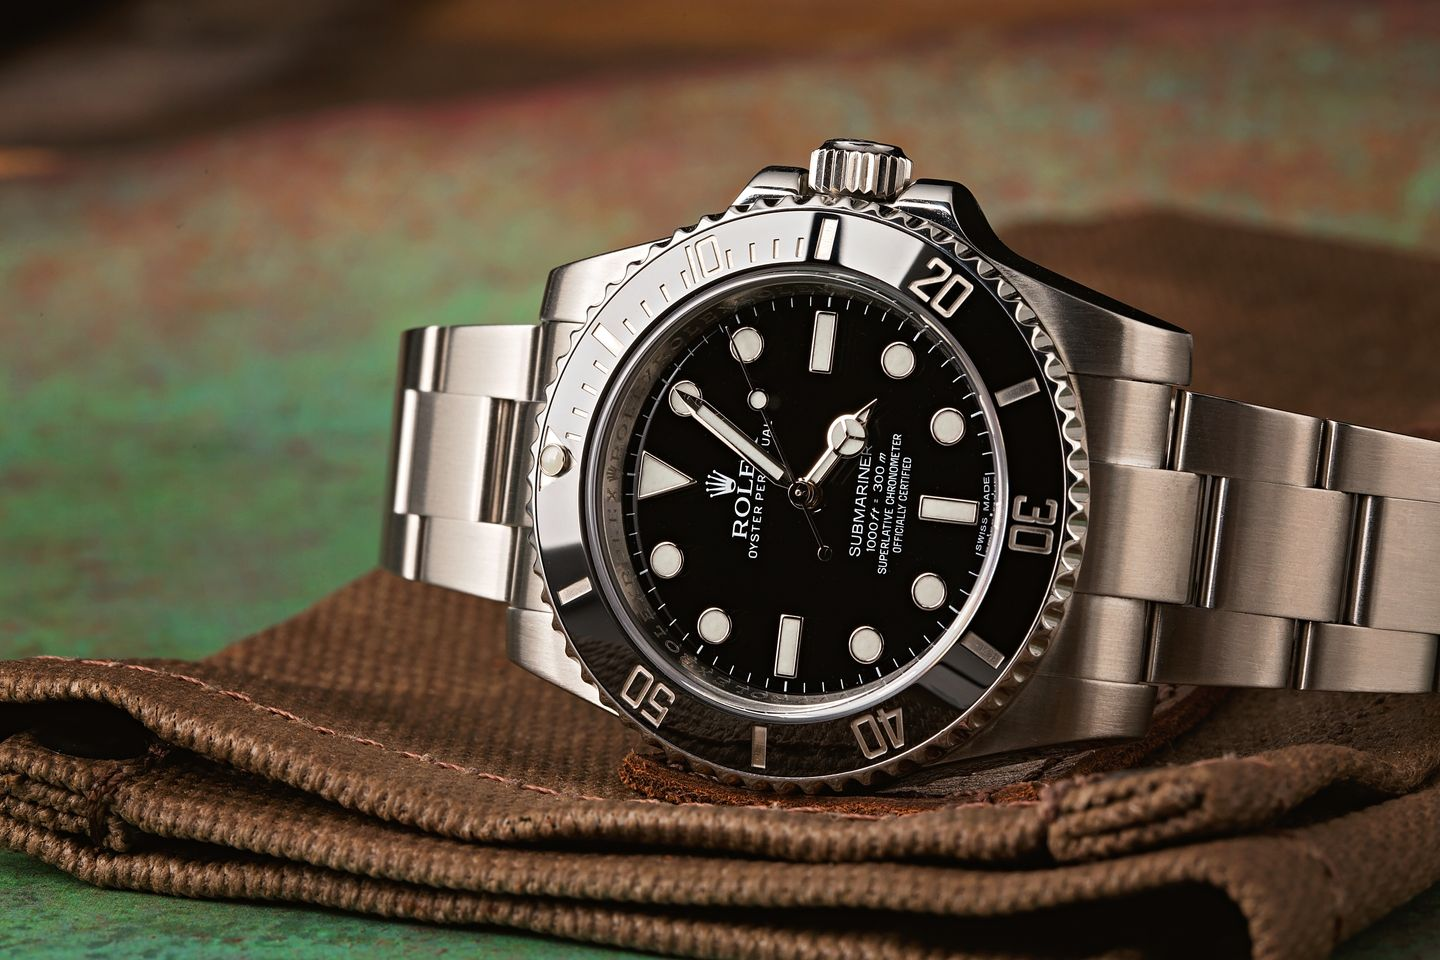 Rolex Submariner No-Date vs Rolex Explorer Stainless Steel